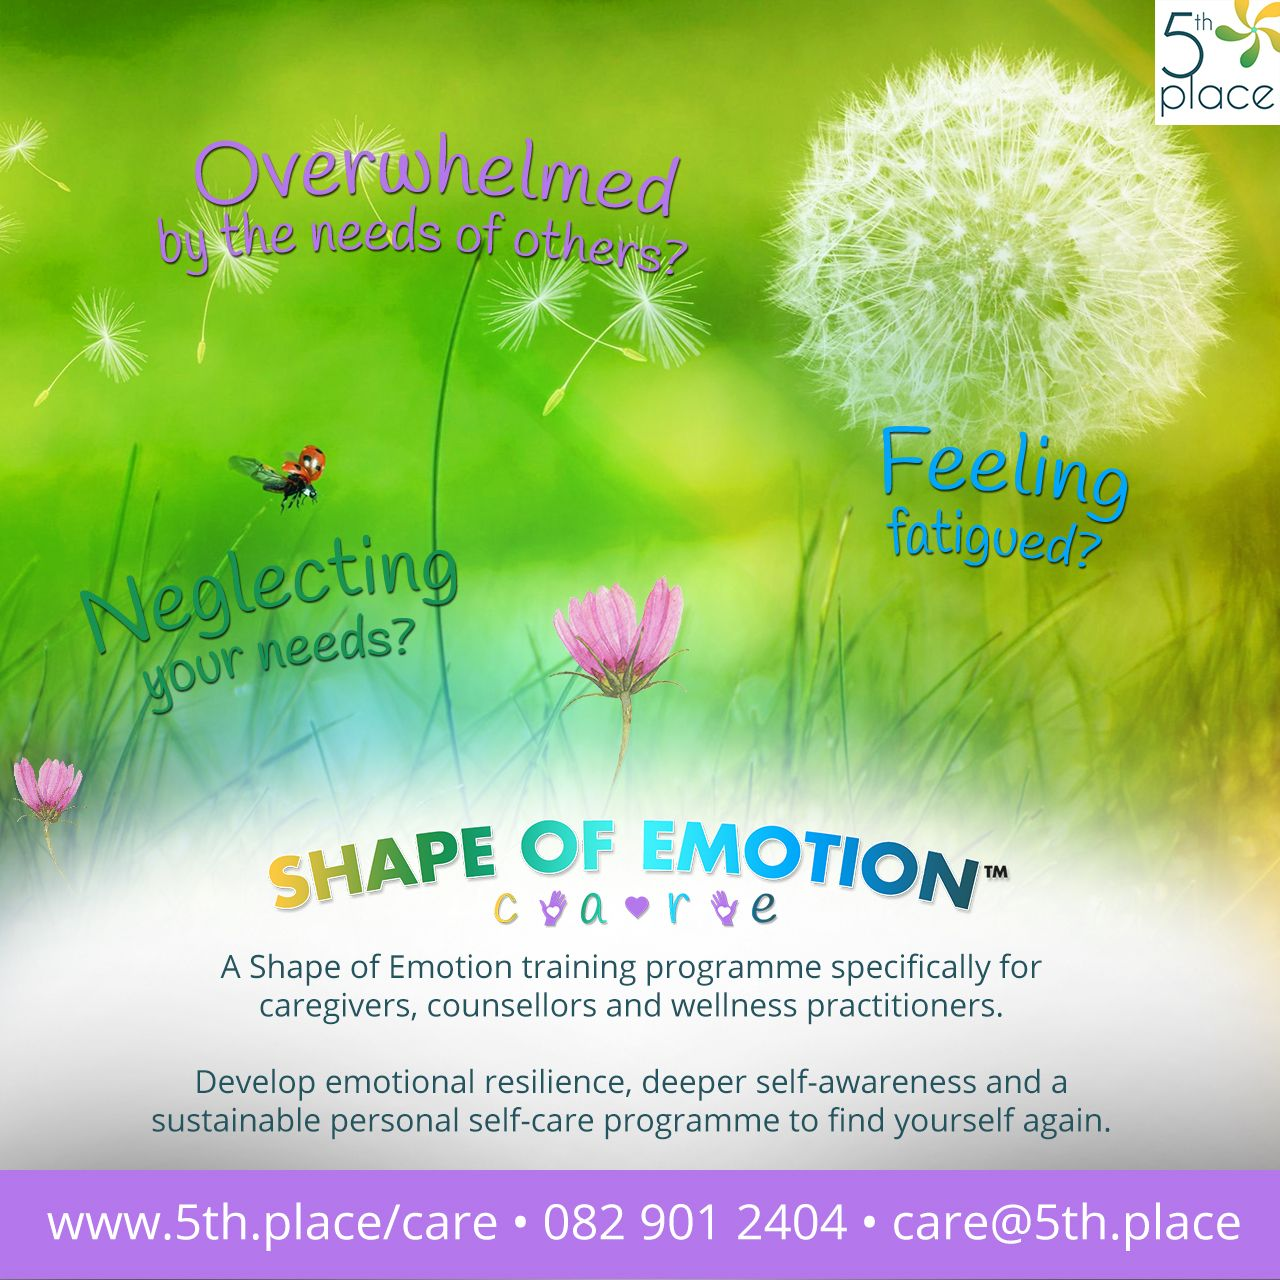 5th-place-shape-of-emotion-care-advert-01a